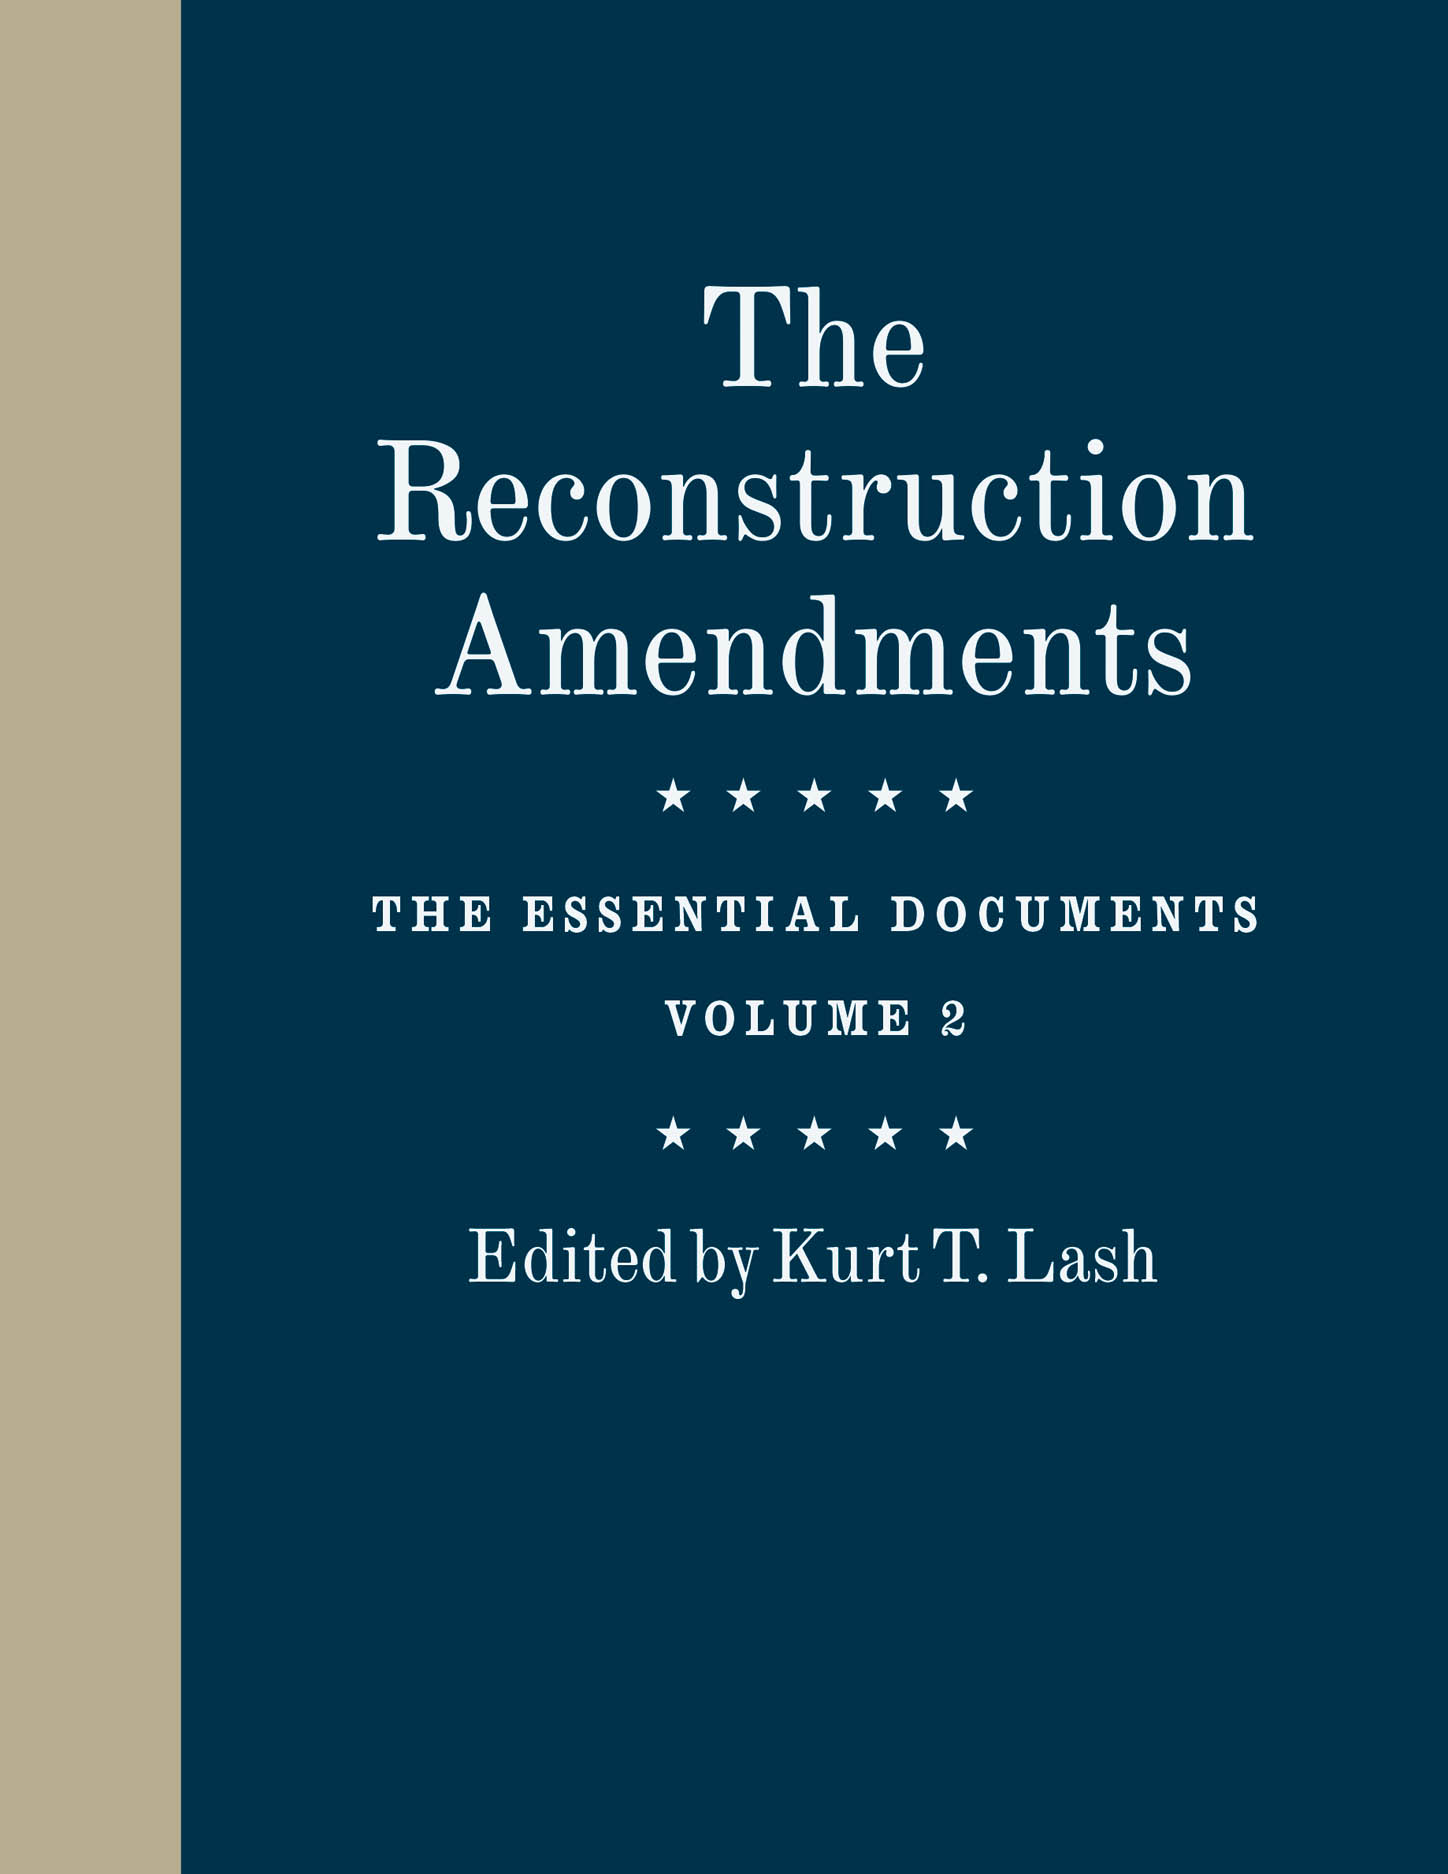 The Reconstruction Amendments: The Essential Documents, Volume 2